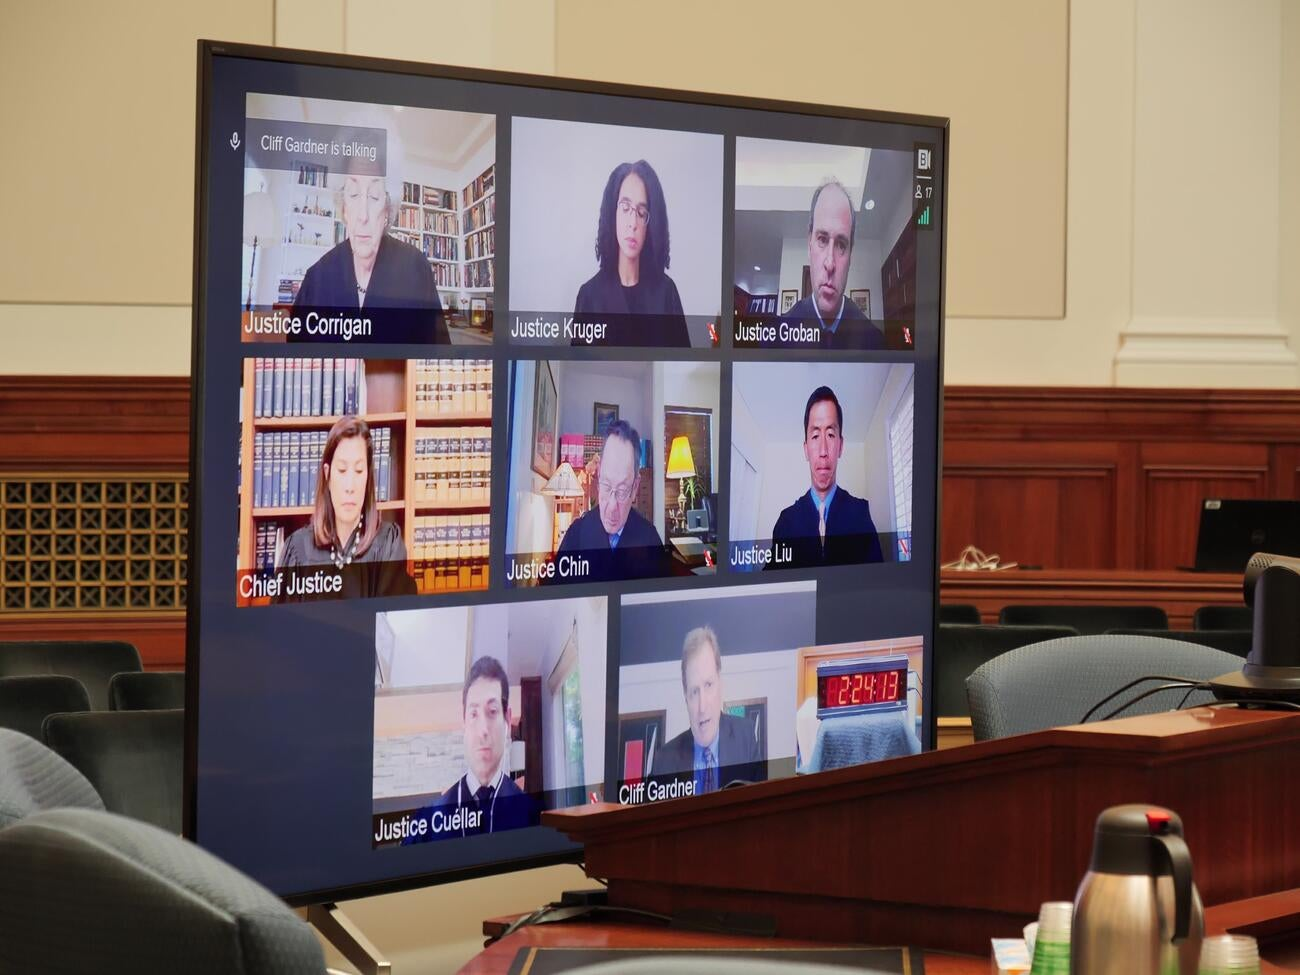 Supreme Court and respondents appearing on virtual screen